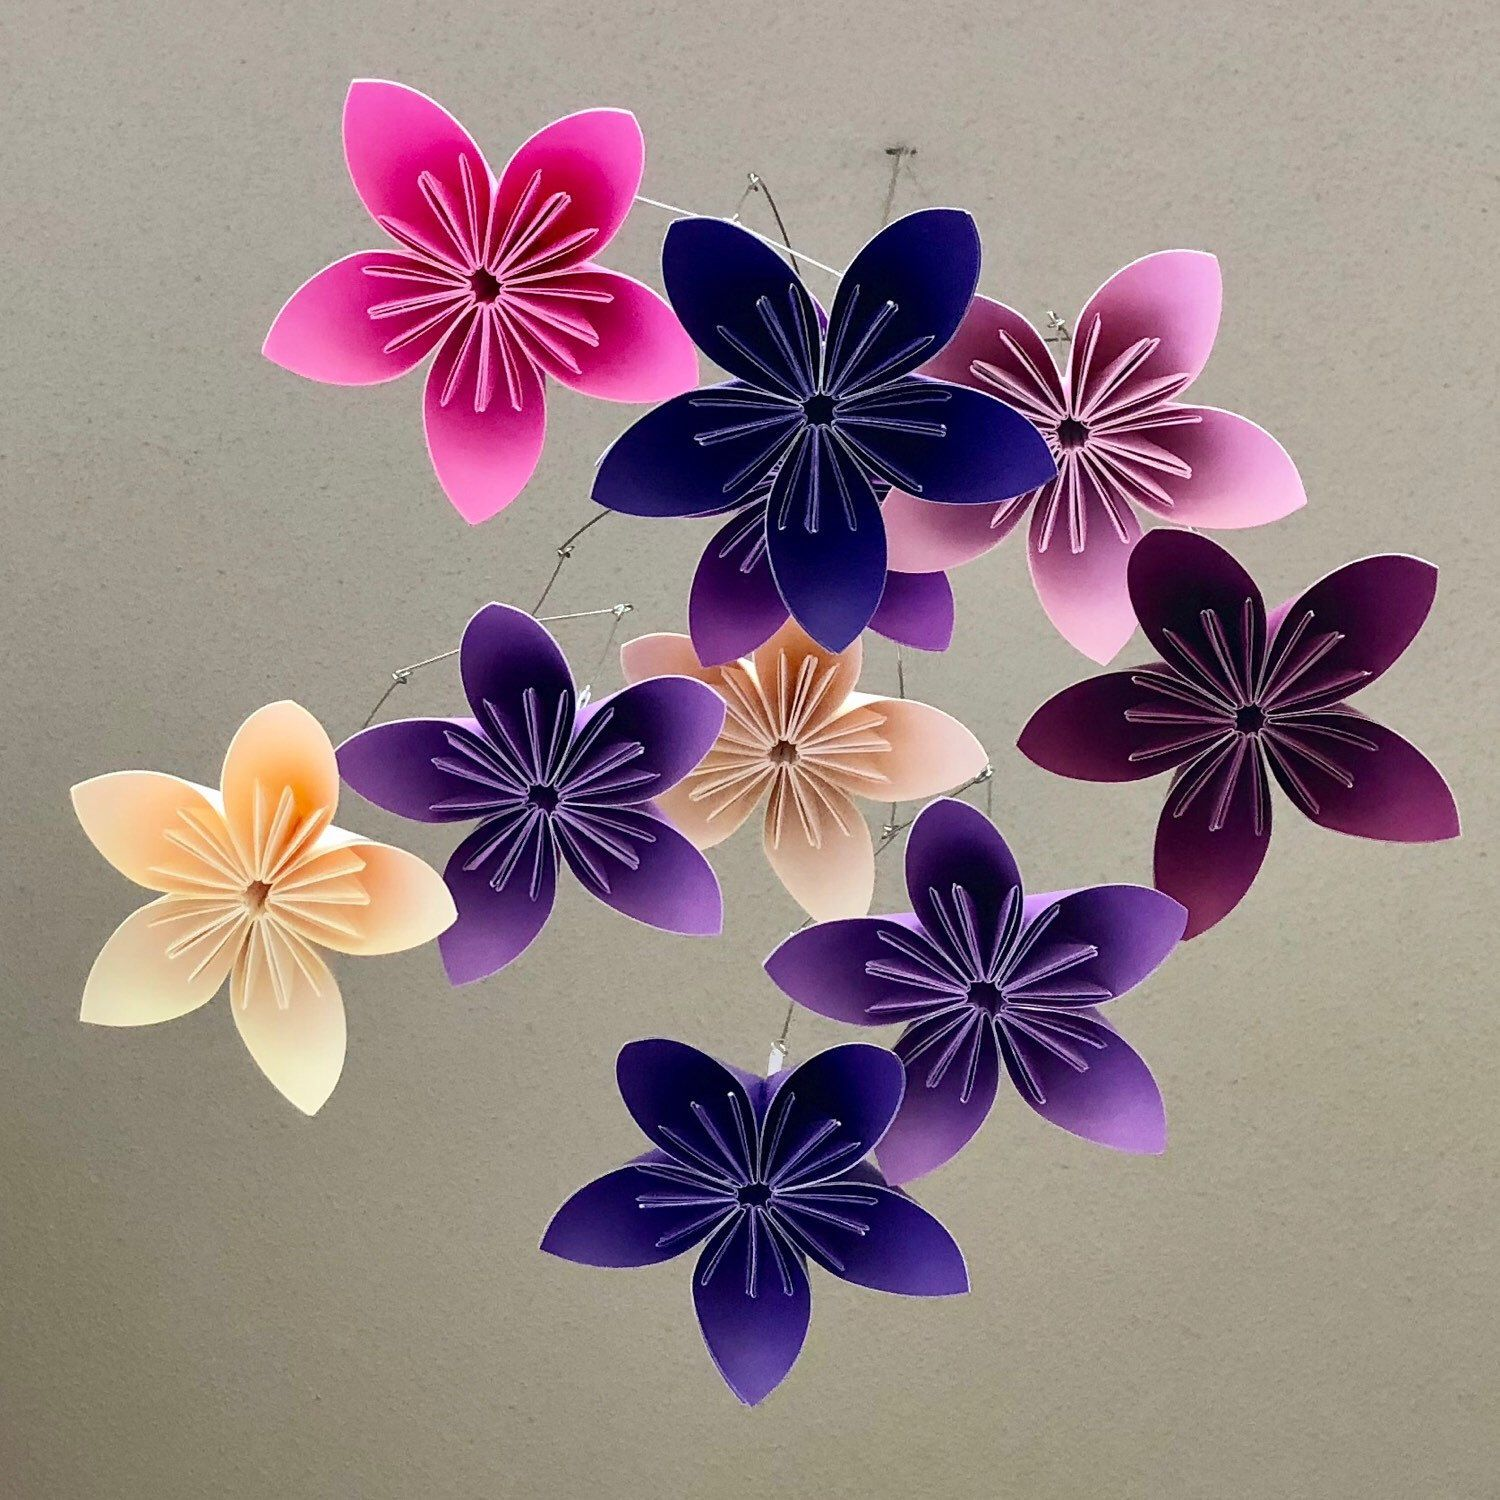 This Is How Katiemade Started With The Origami Flower Mobile For